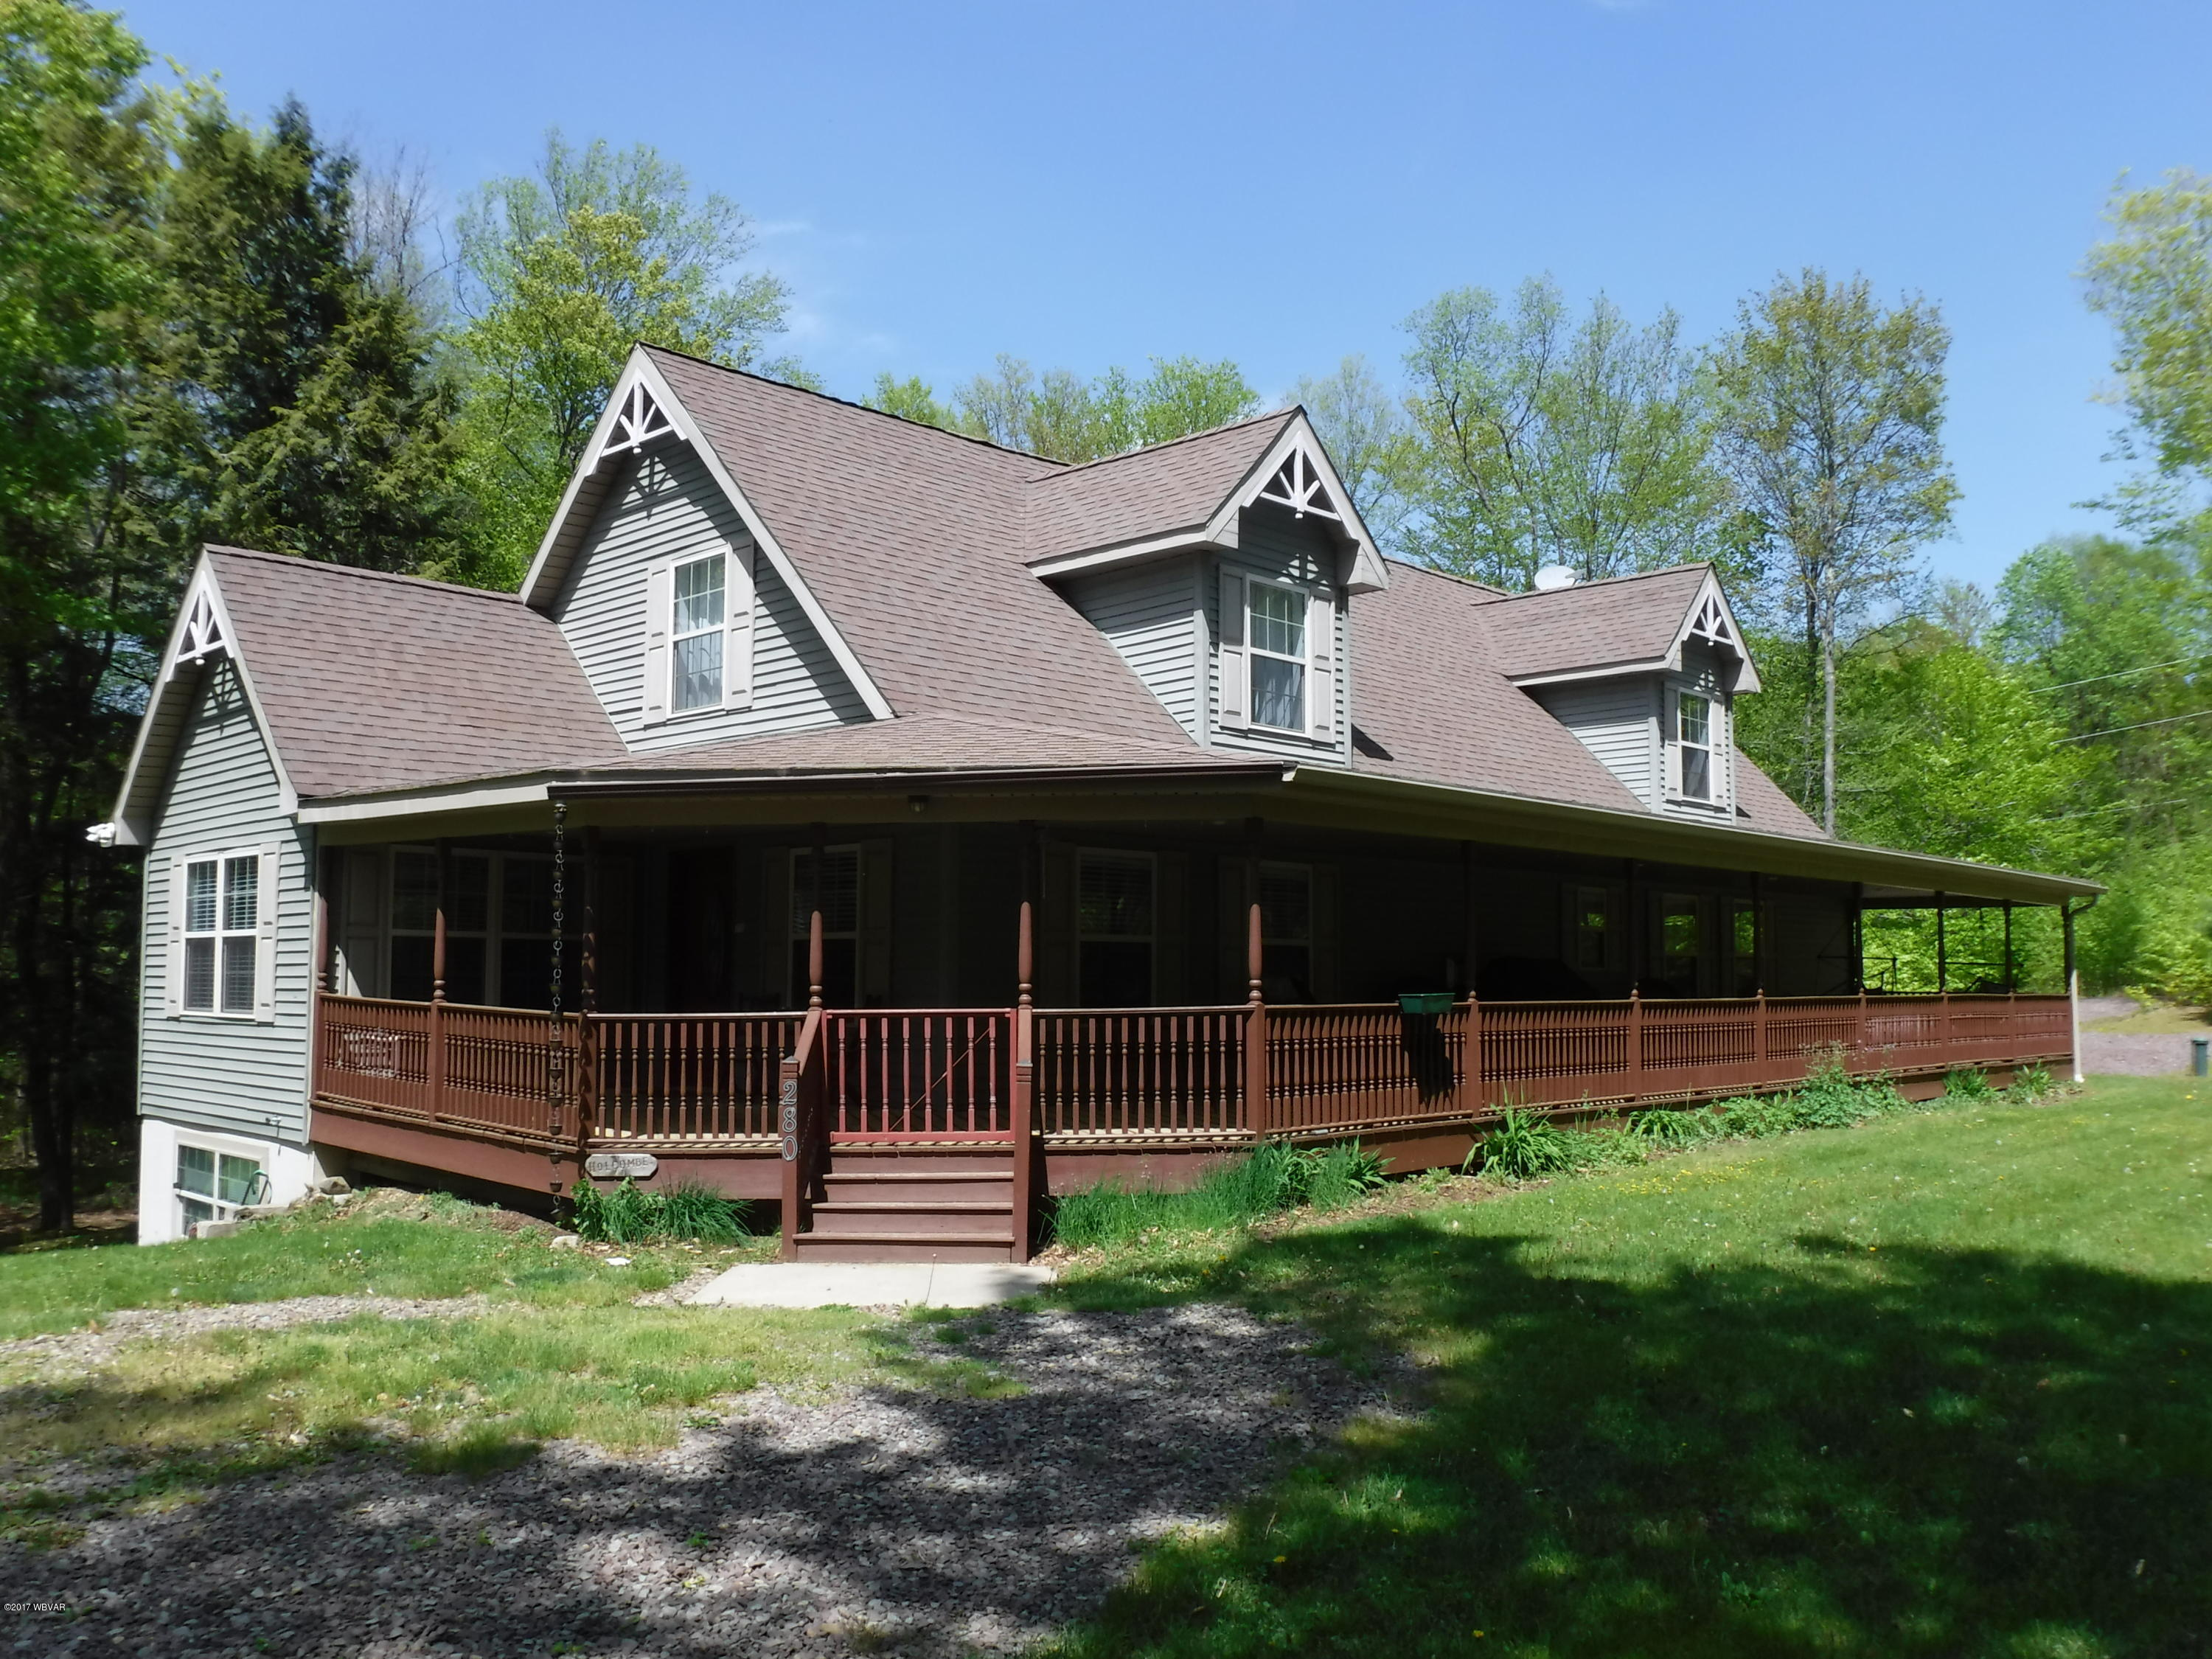 280 GROUSE WOODS DRIVE,Laporte,PA 18626,3 Bedrooms Bedrooms,4 BathroomsBathrooms,Residential,GROUSE WOODS,WB-79941